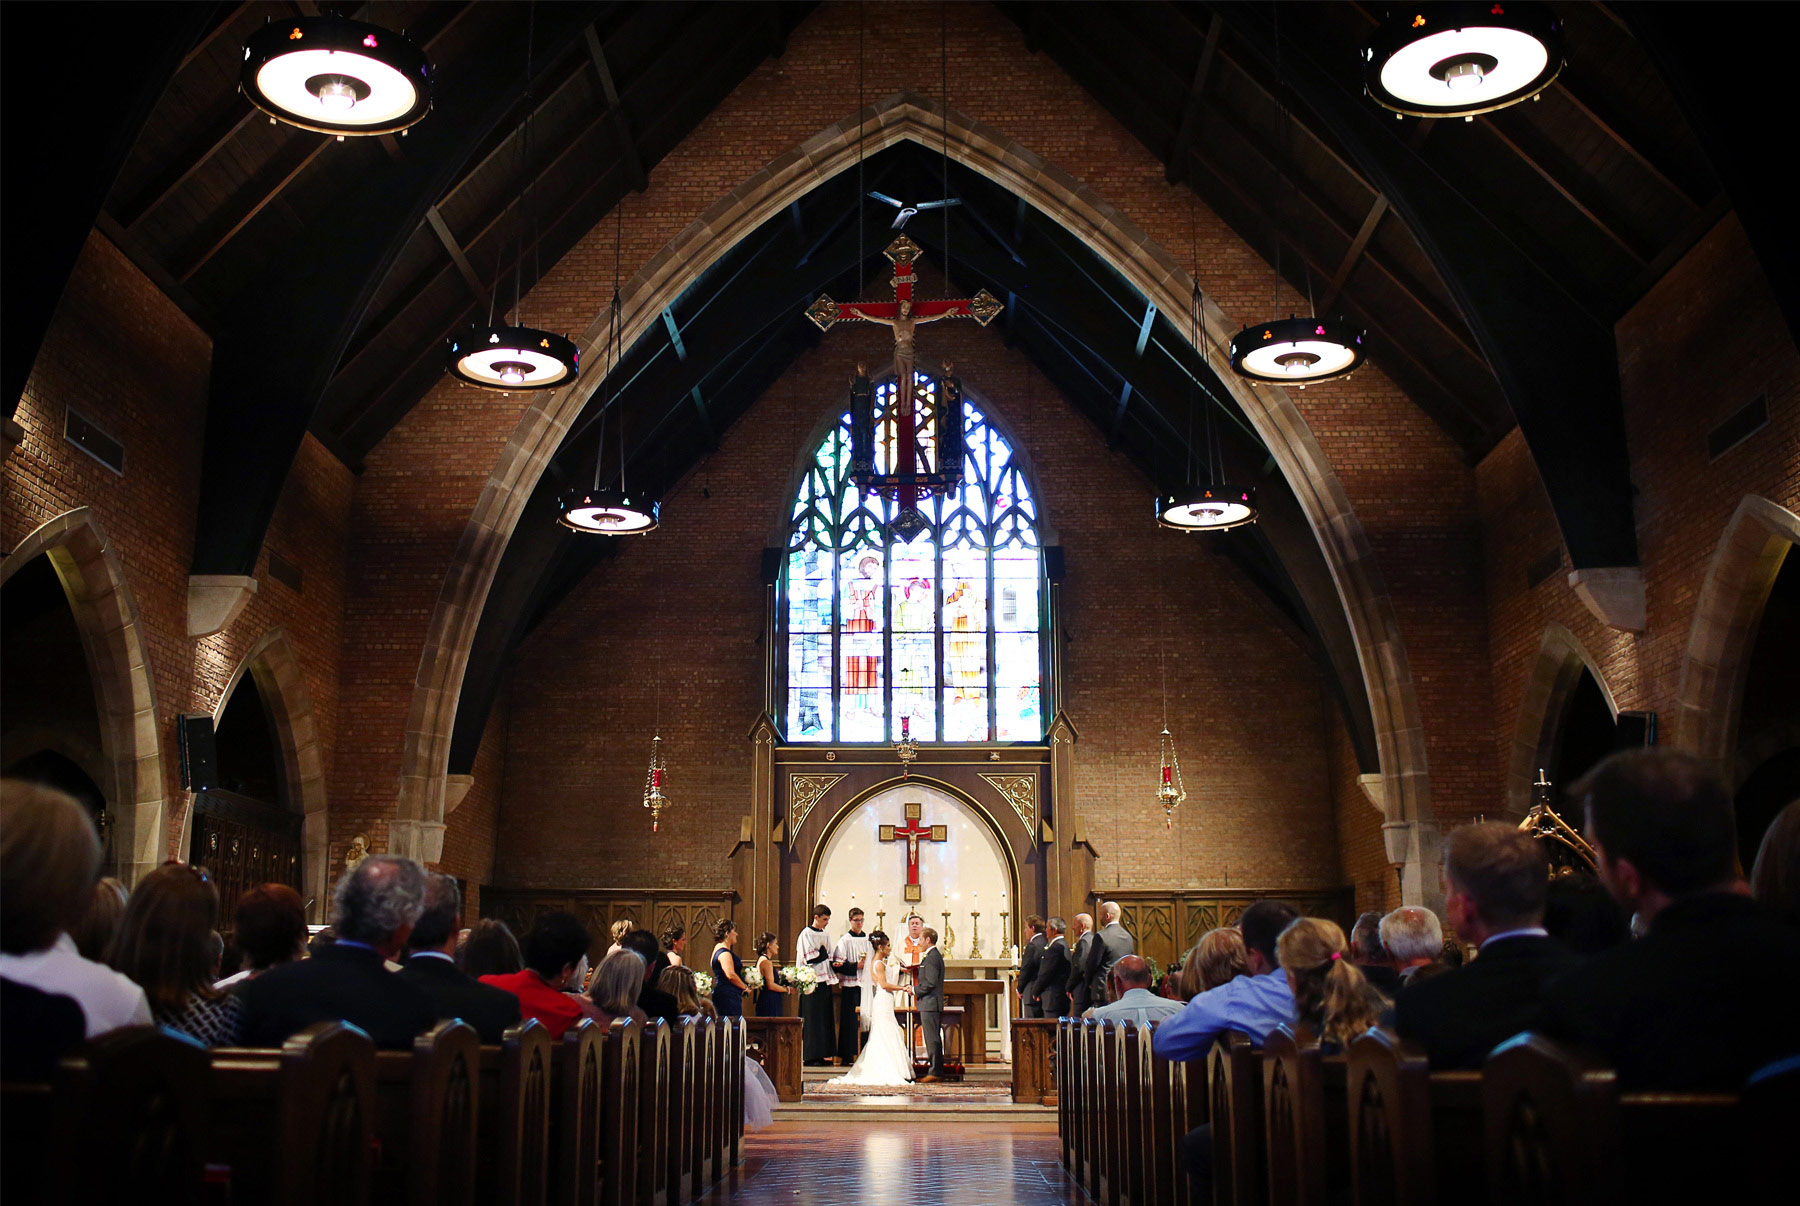 07-Saint-Louis-Park-Minnesota-Wedding-Photographer-by-Andrew-Vick-Photography-Fall-Autumn-Holy-Family-Catholic-Church-Ceremony-Bride-Groom-Vows-Paula-and-Jason.jpg